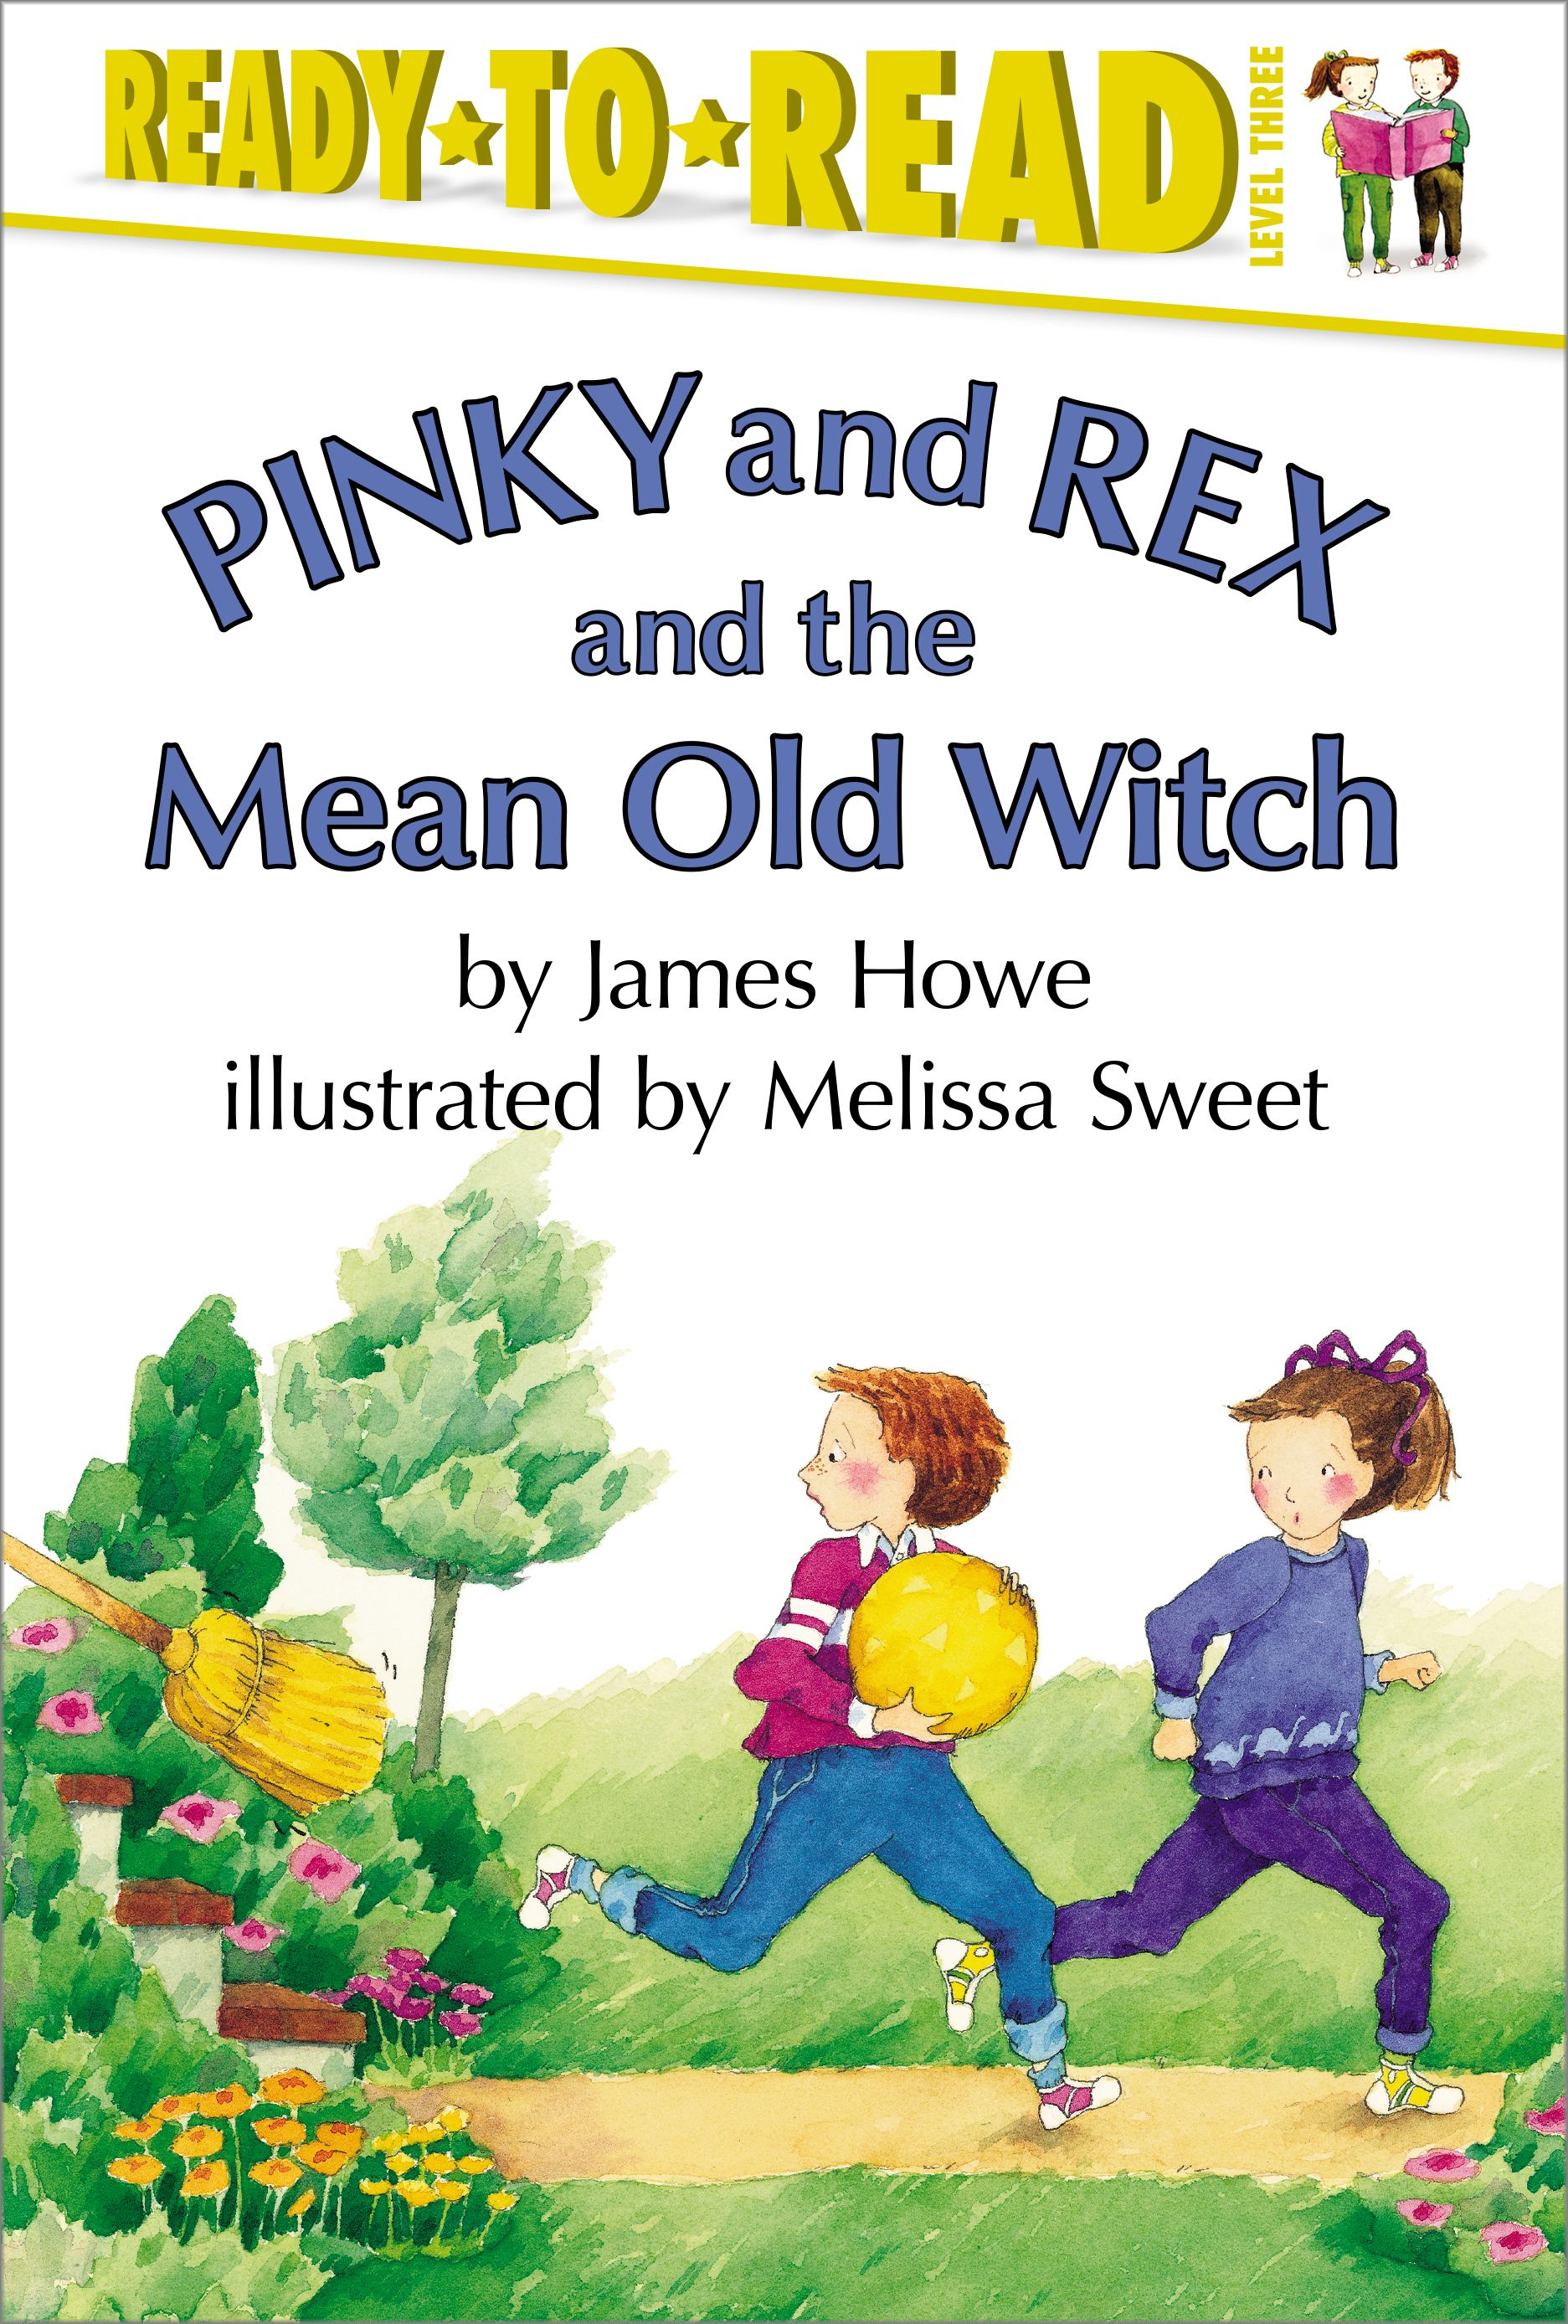 Pinky and rex and the mean old witch 9780689316173 hr